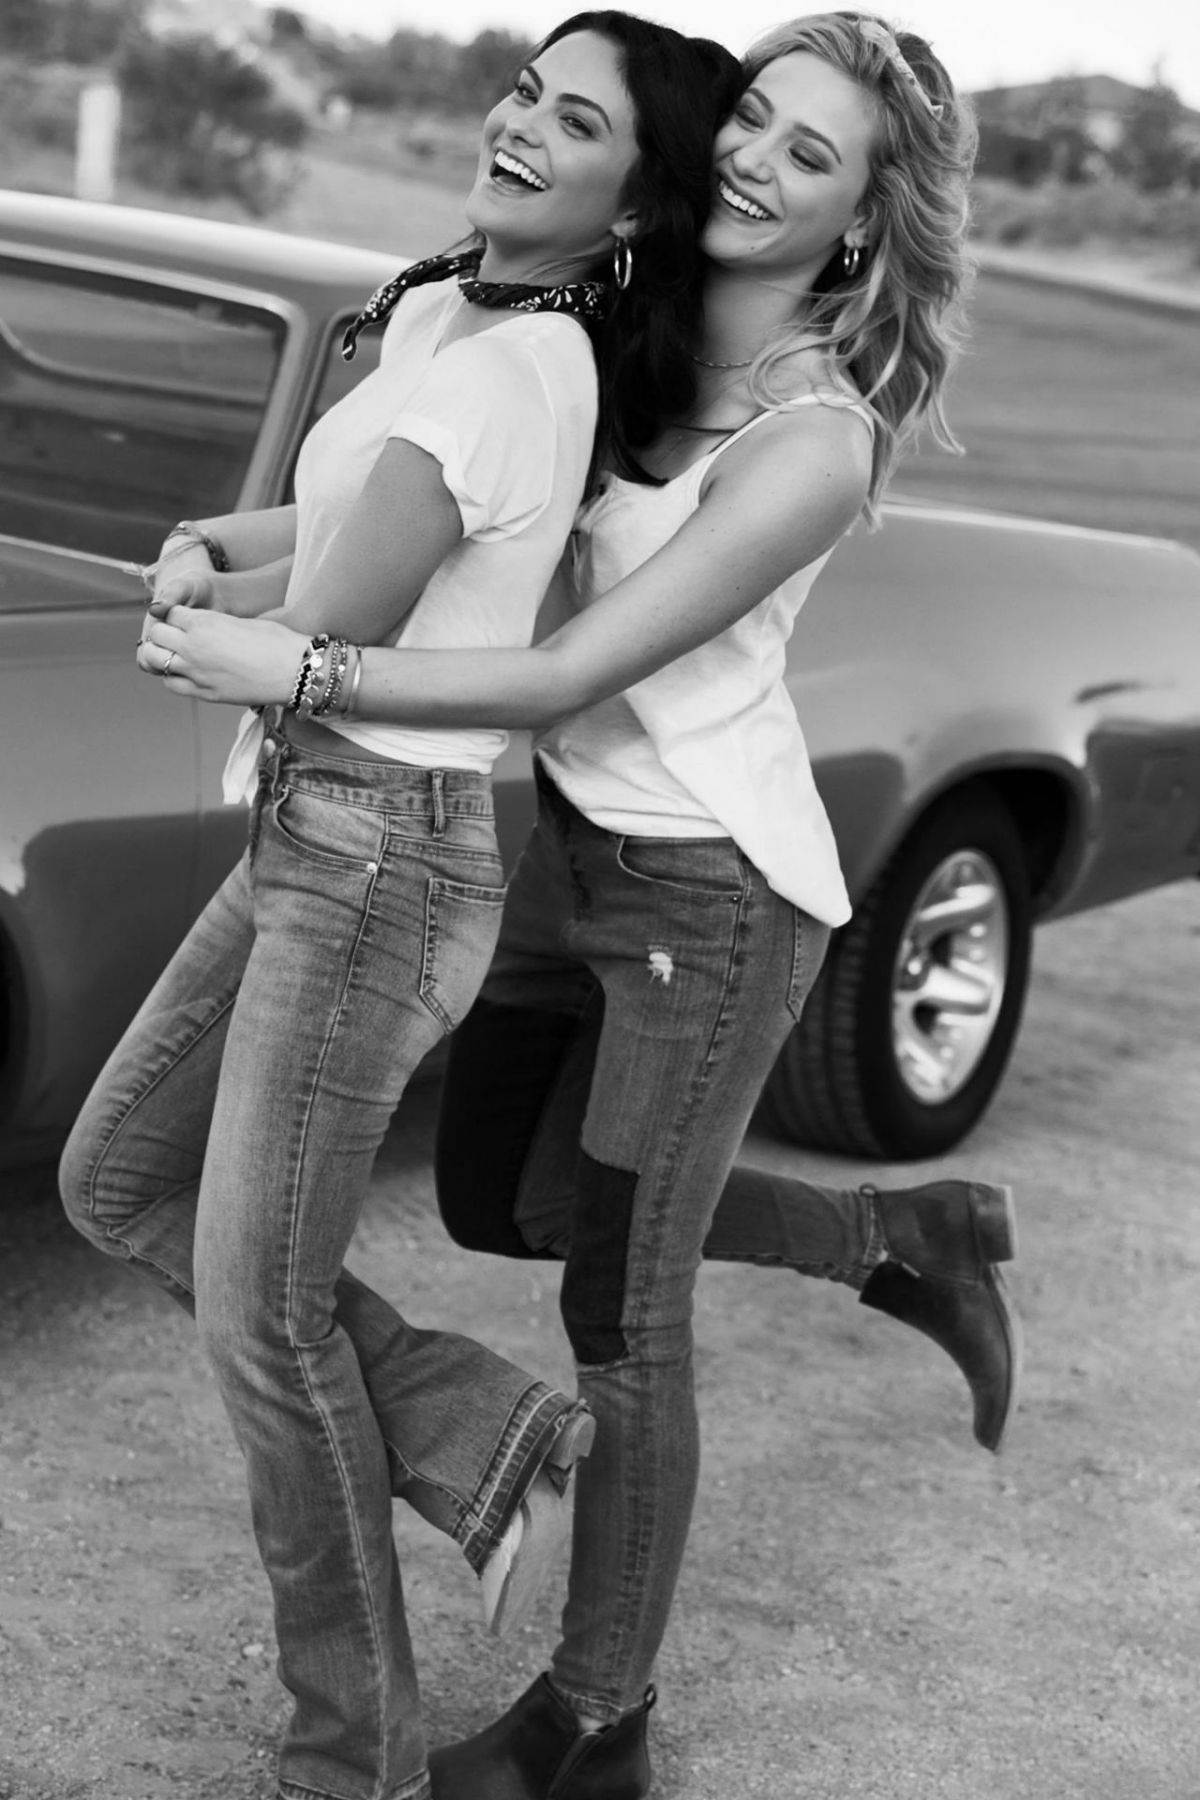 Camila Mendes And Lili Reinhart For Bongo Jeans Bongo Bff